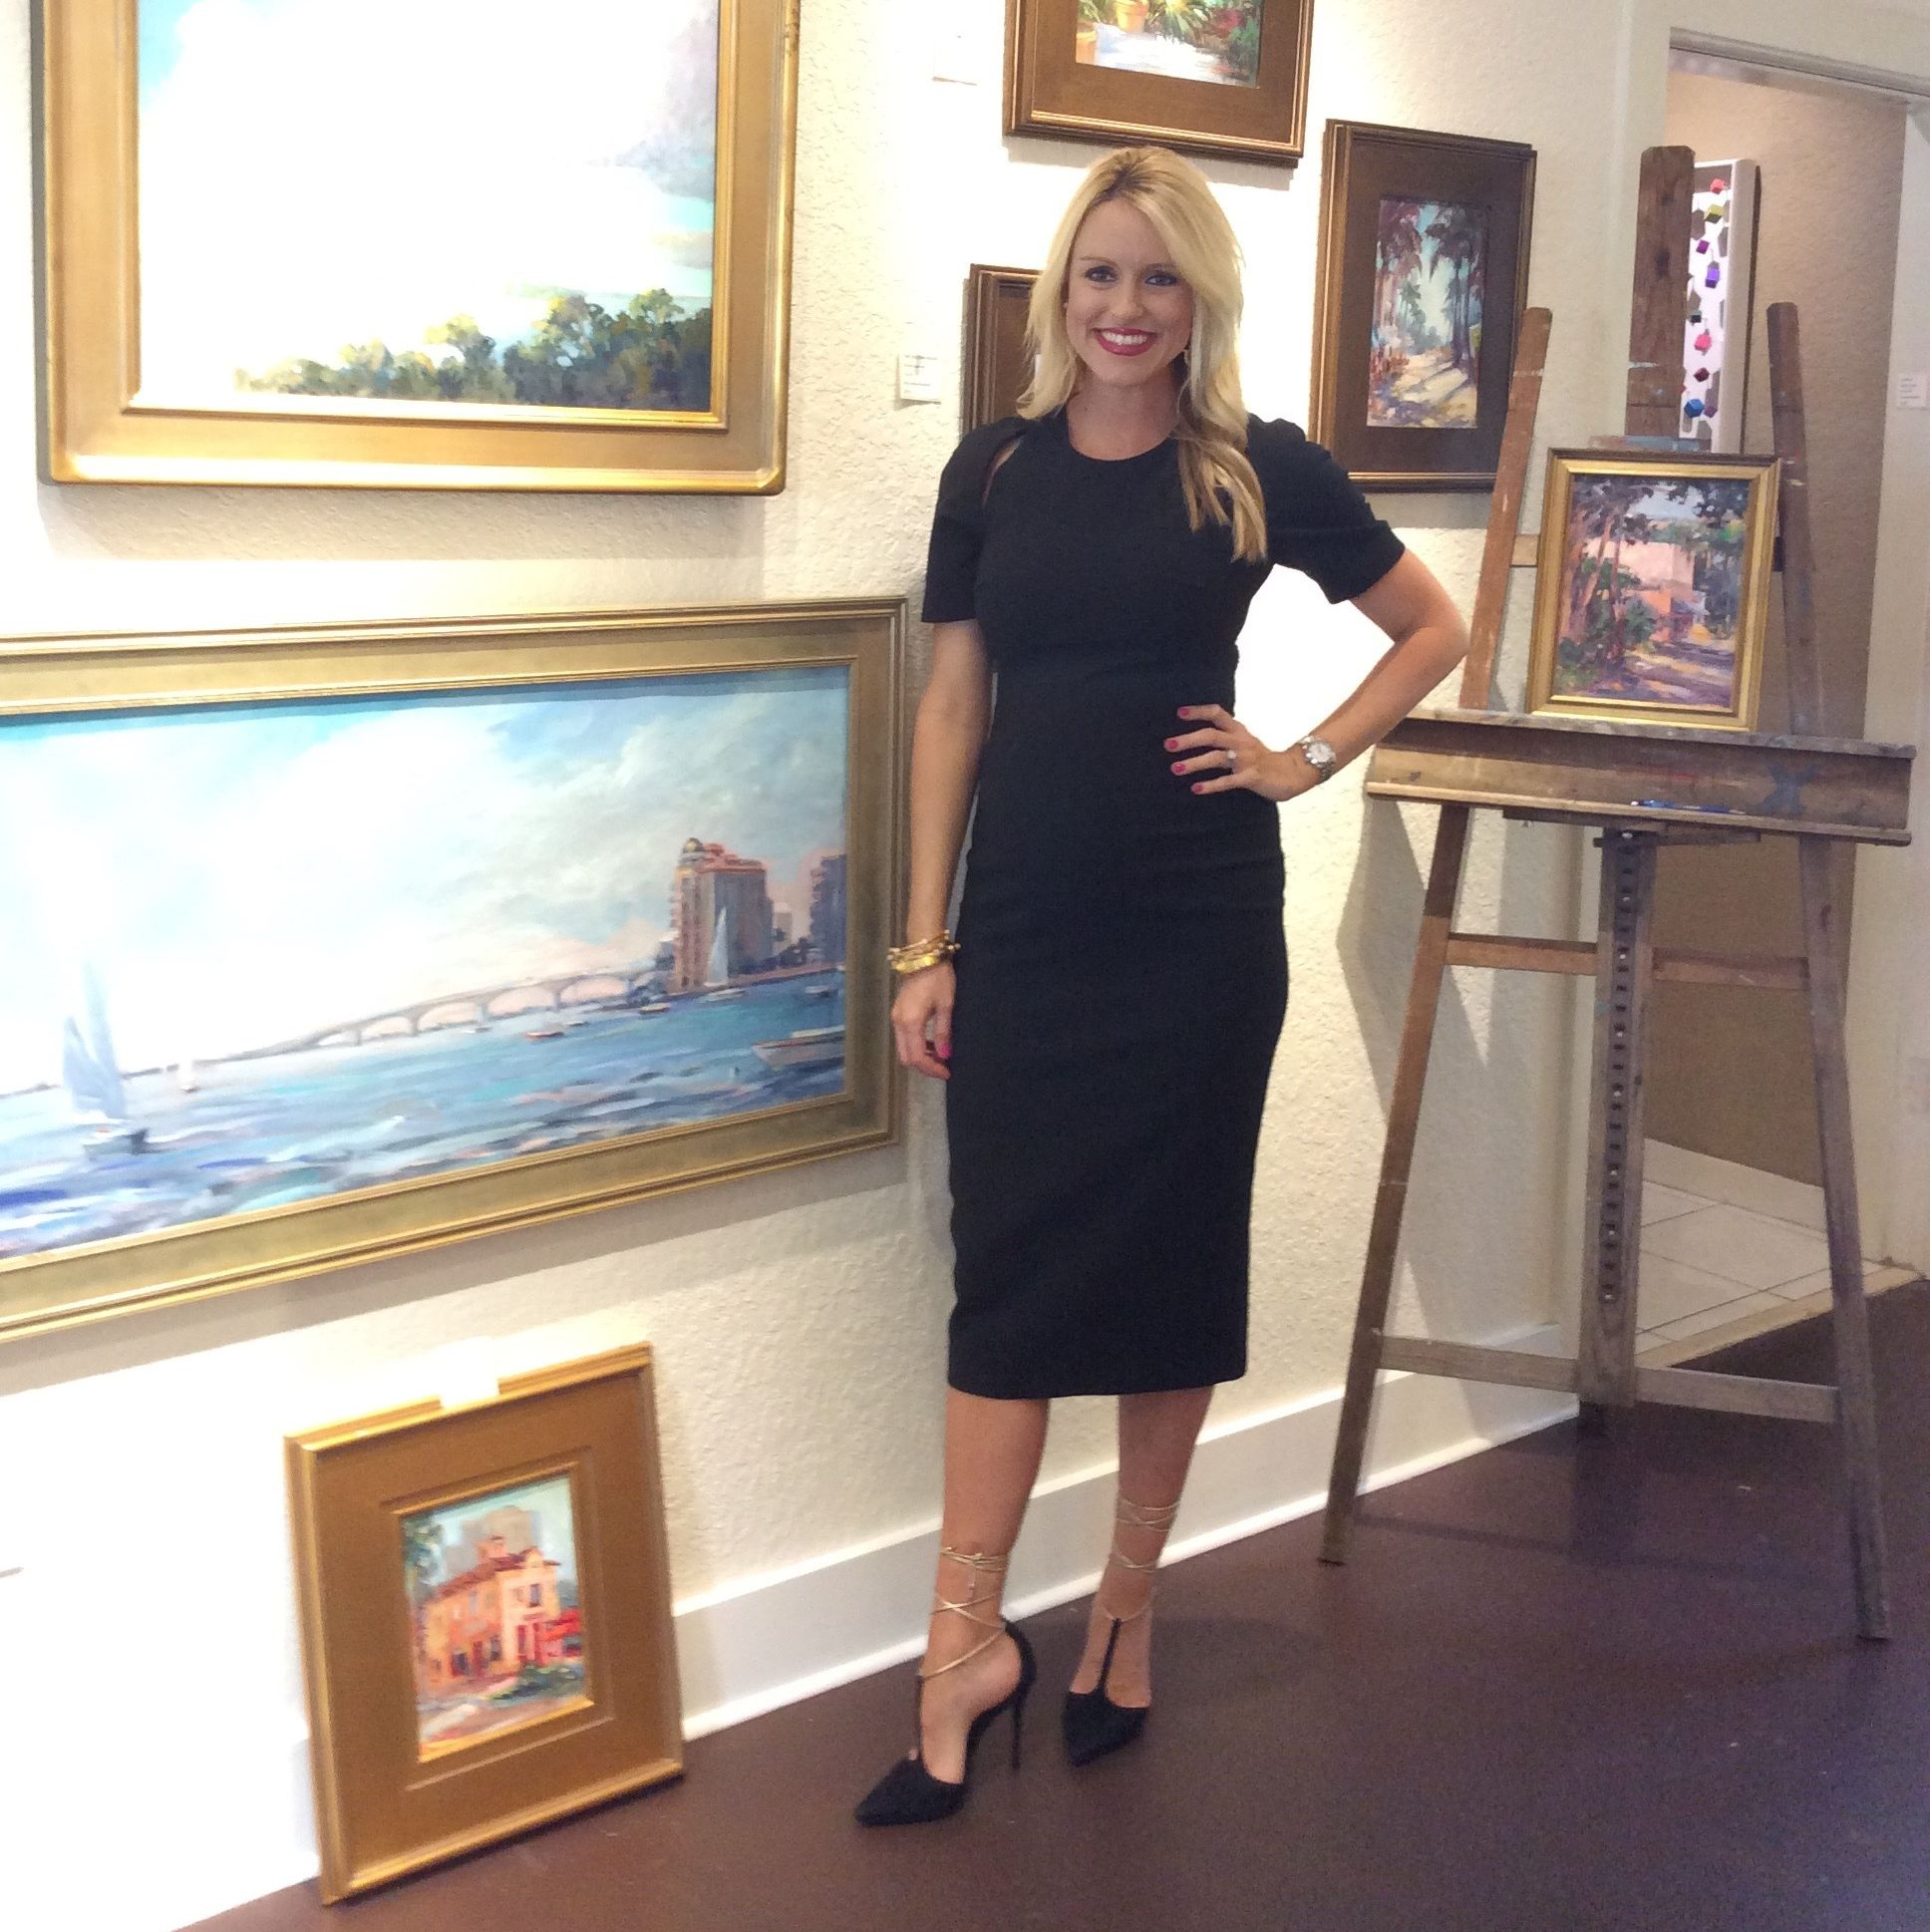 Montana in front of paintings by local artist linda richichi rrfm1x